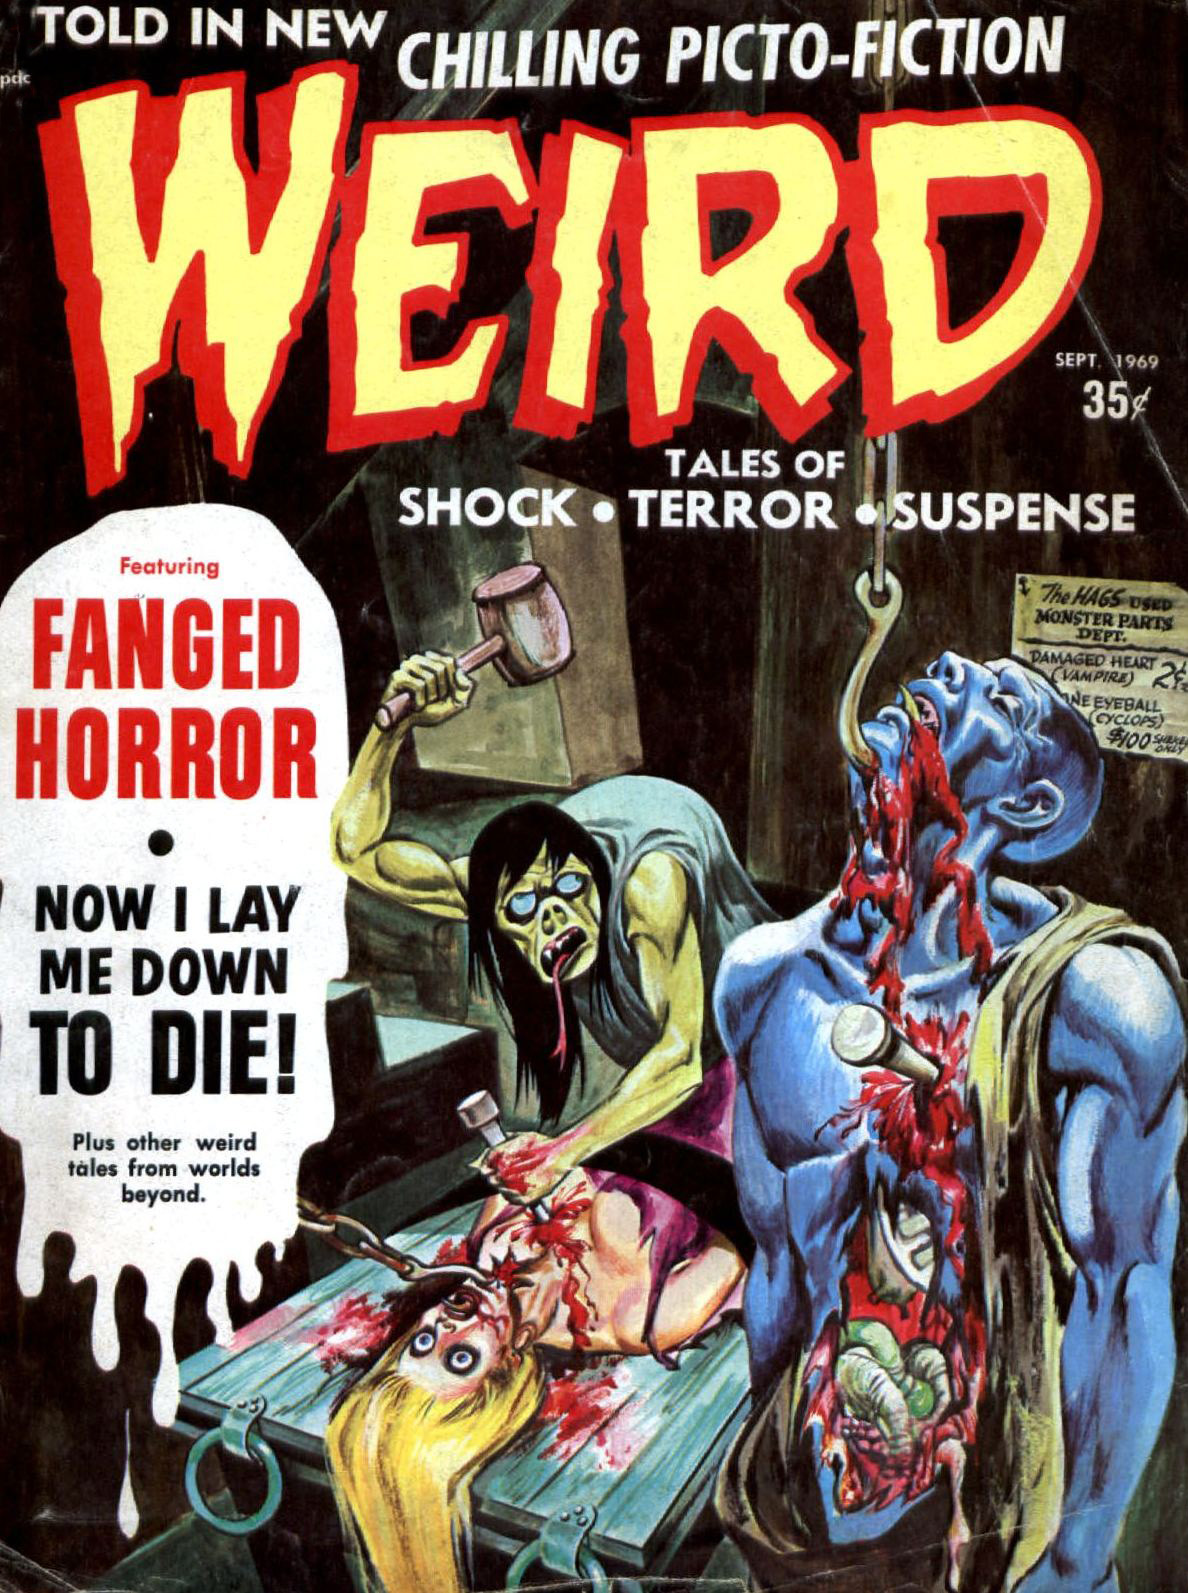 Weird Vol. 03 #4 (Eerie Publications, 1969)